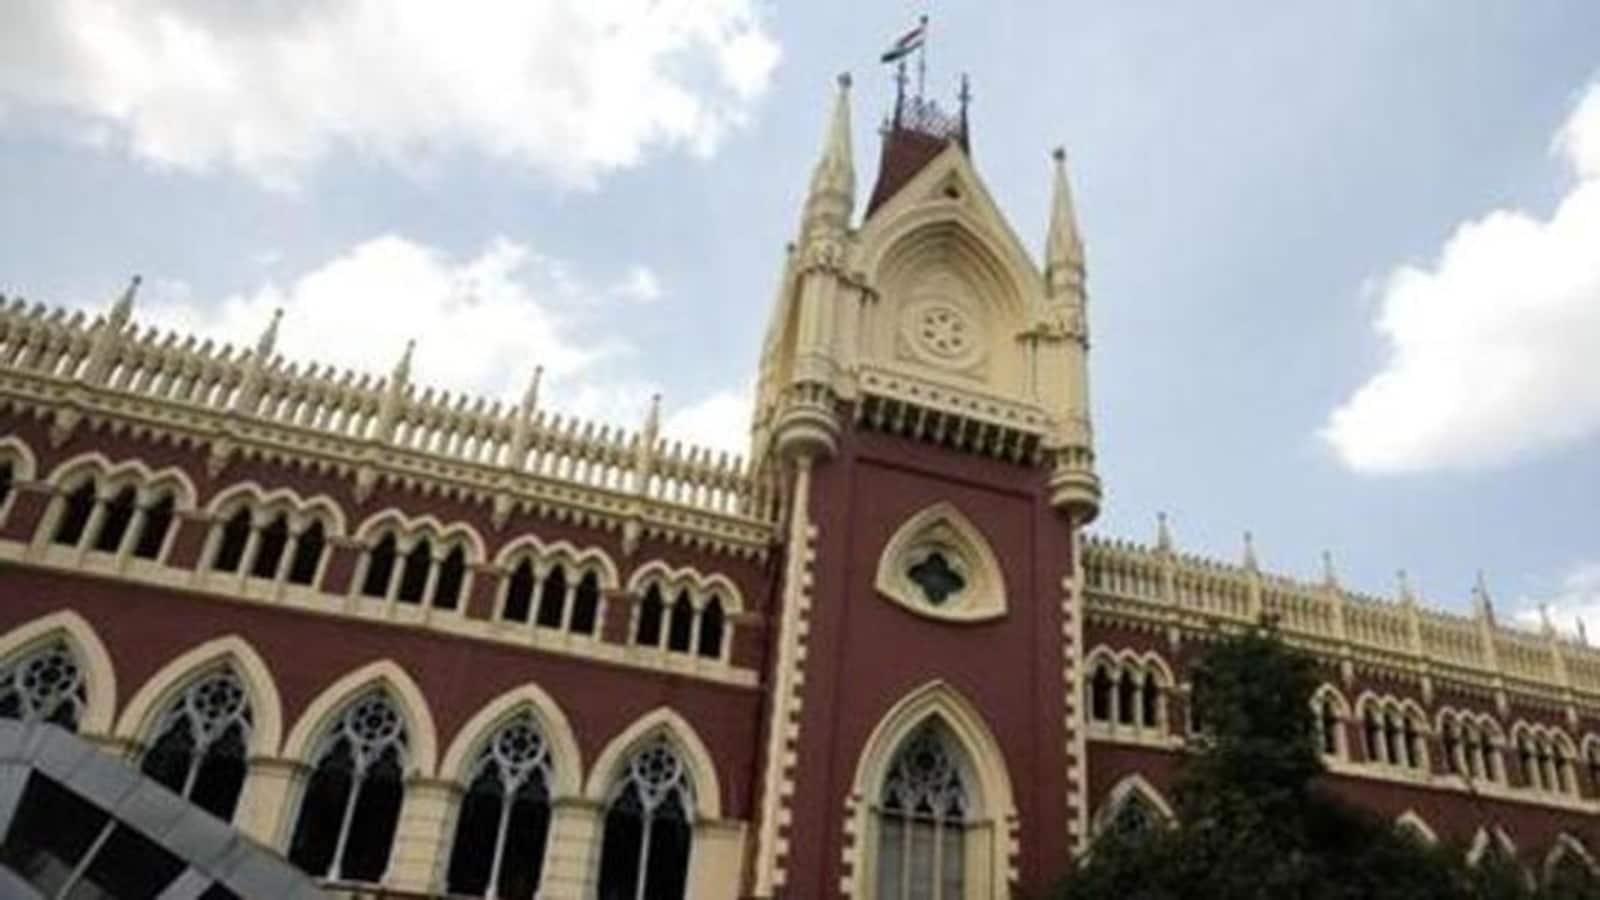 Kolkata: No fixed rates in some private hospitals, plea filed in high court